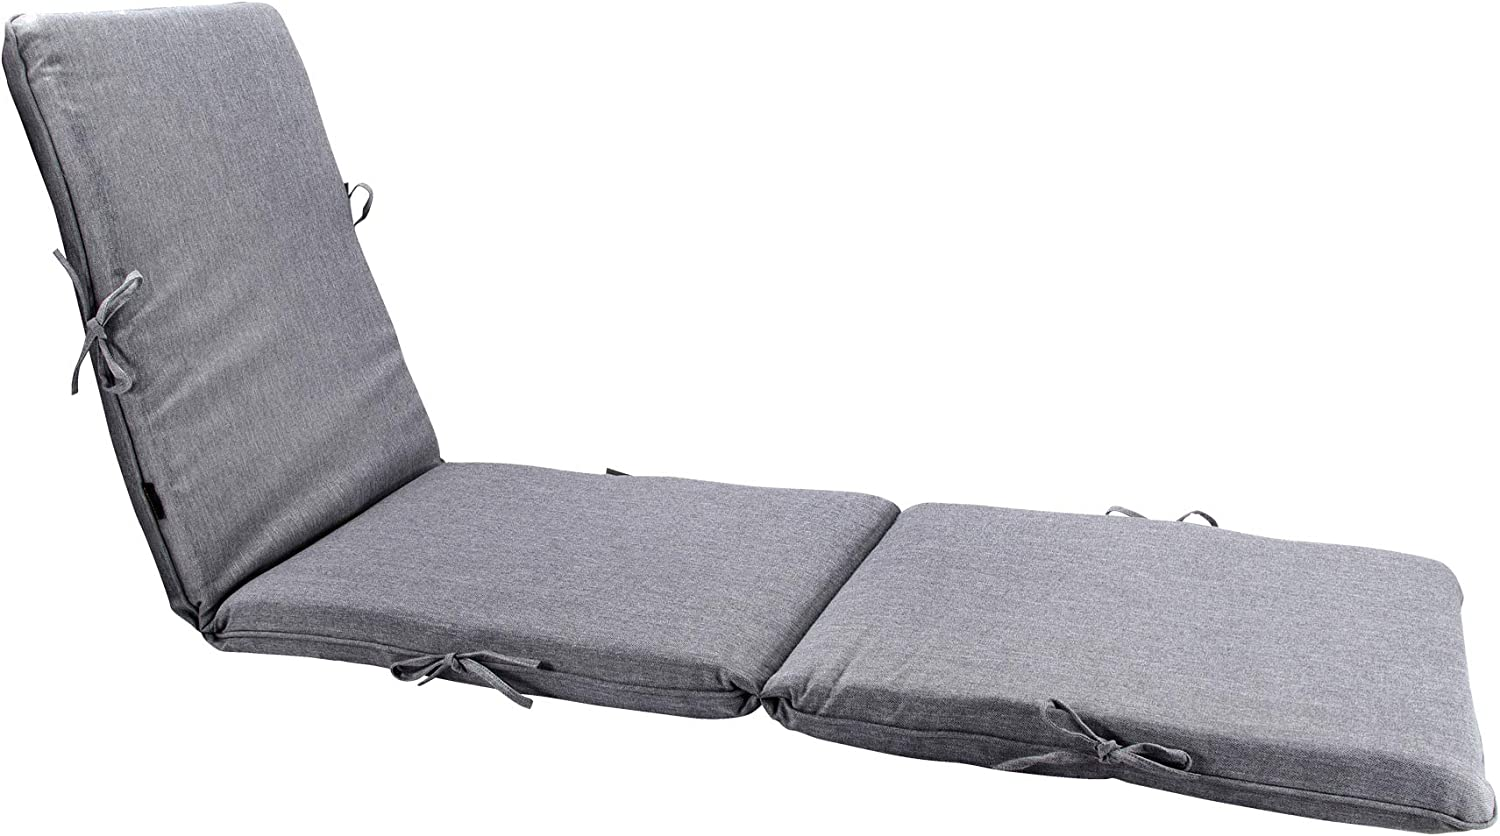 Bossima Indoor Outdoor Lounge Chair Cushions Chaise Bench Seasonal Replacement Cushions Patio Furniture Cushions (Olefin Light Grey)